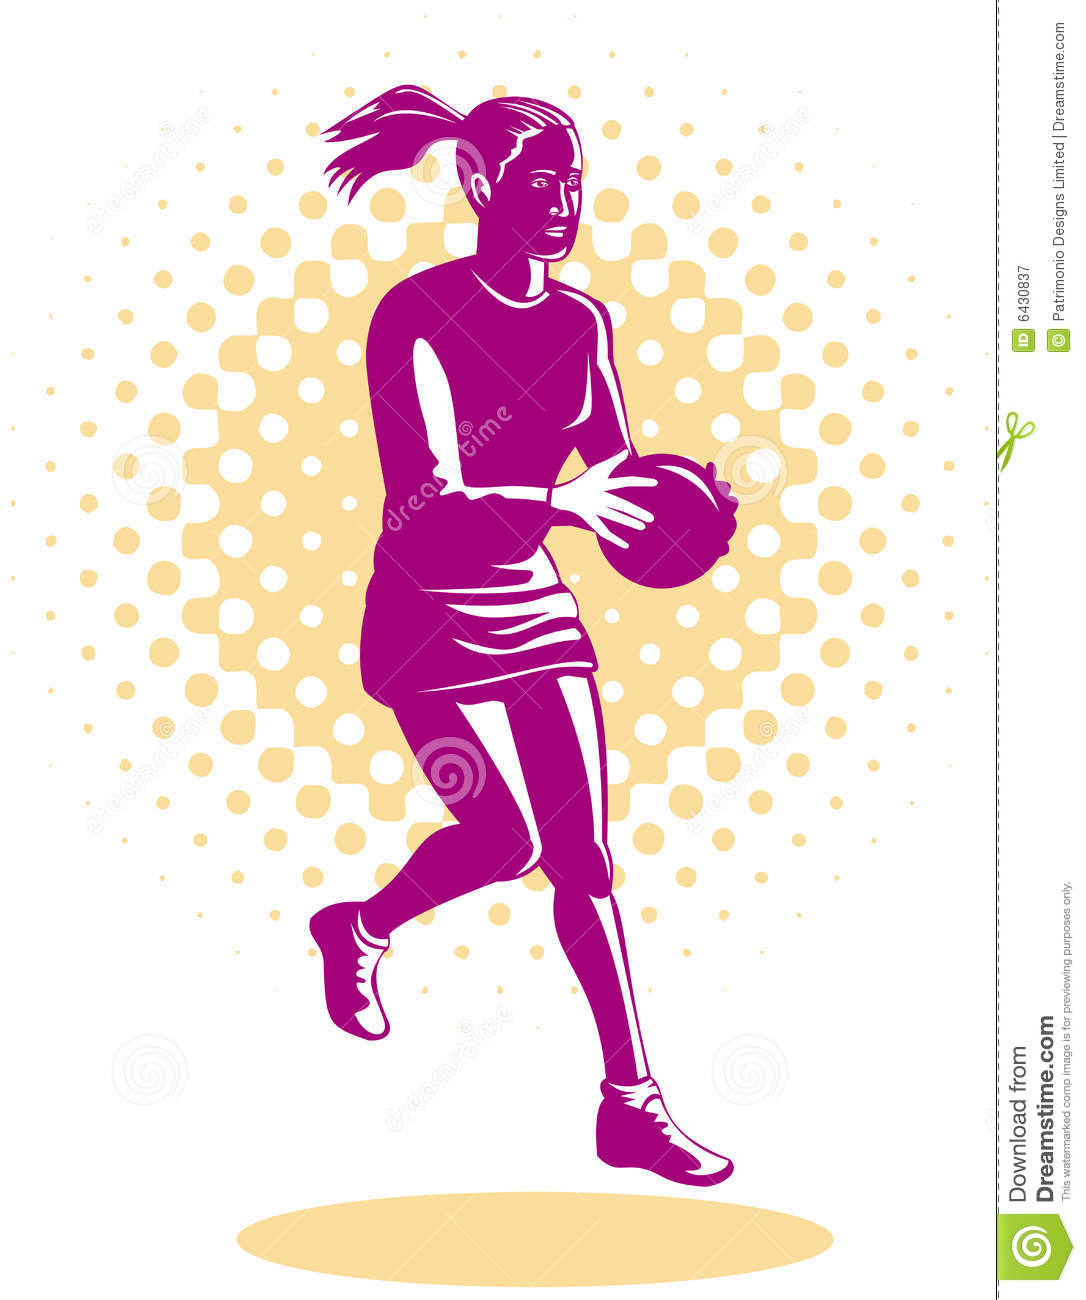 how to play netball video